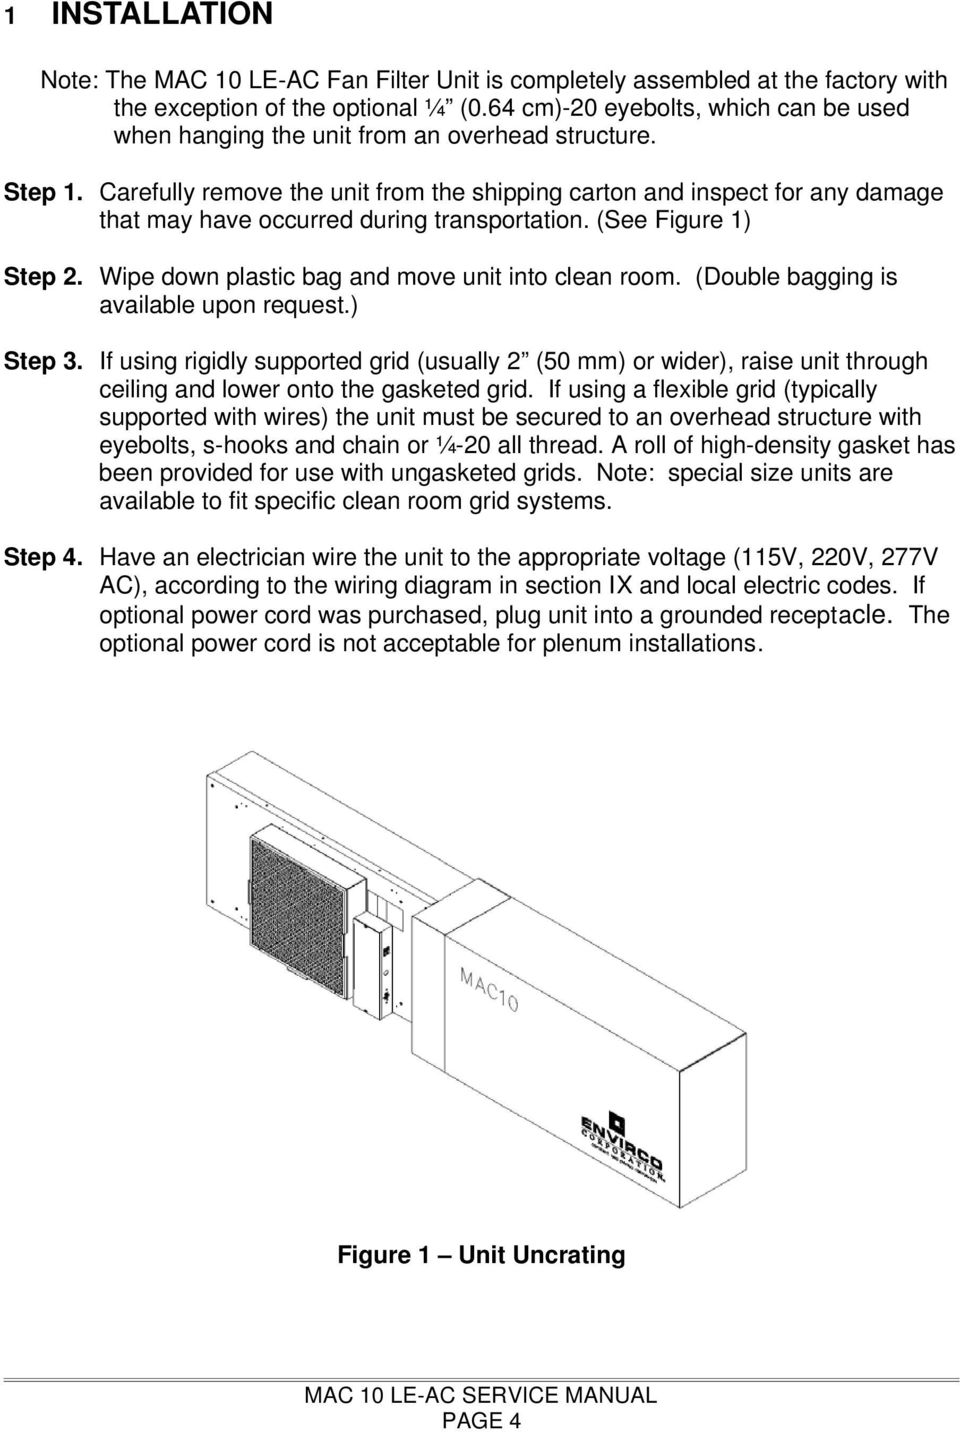 Mac 10 Le Ac Fan Filter Module Installation And Service Manual Pdf Power Clean Wiring Diagram Carefully Remove The Unit From Shipping Carton Inspect For Any Damage That May Have